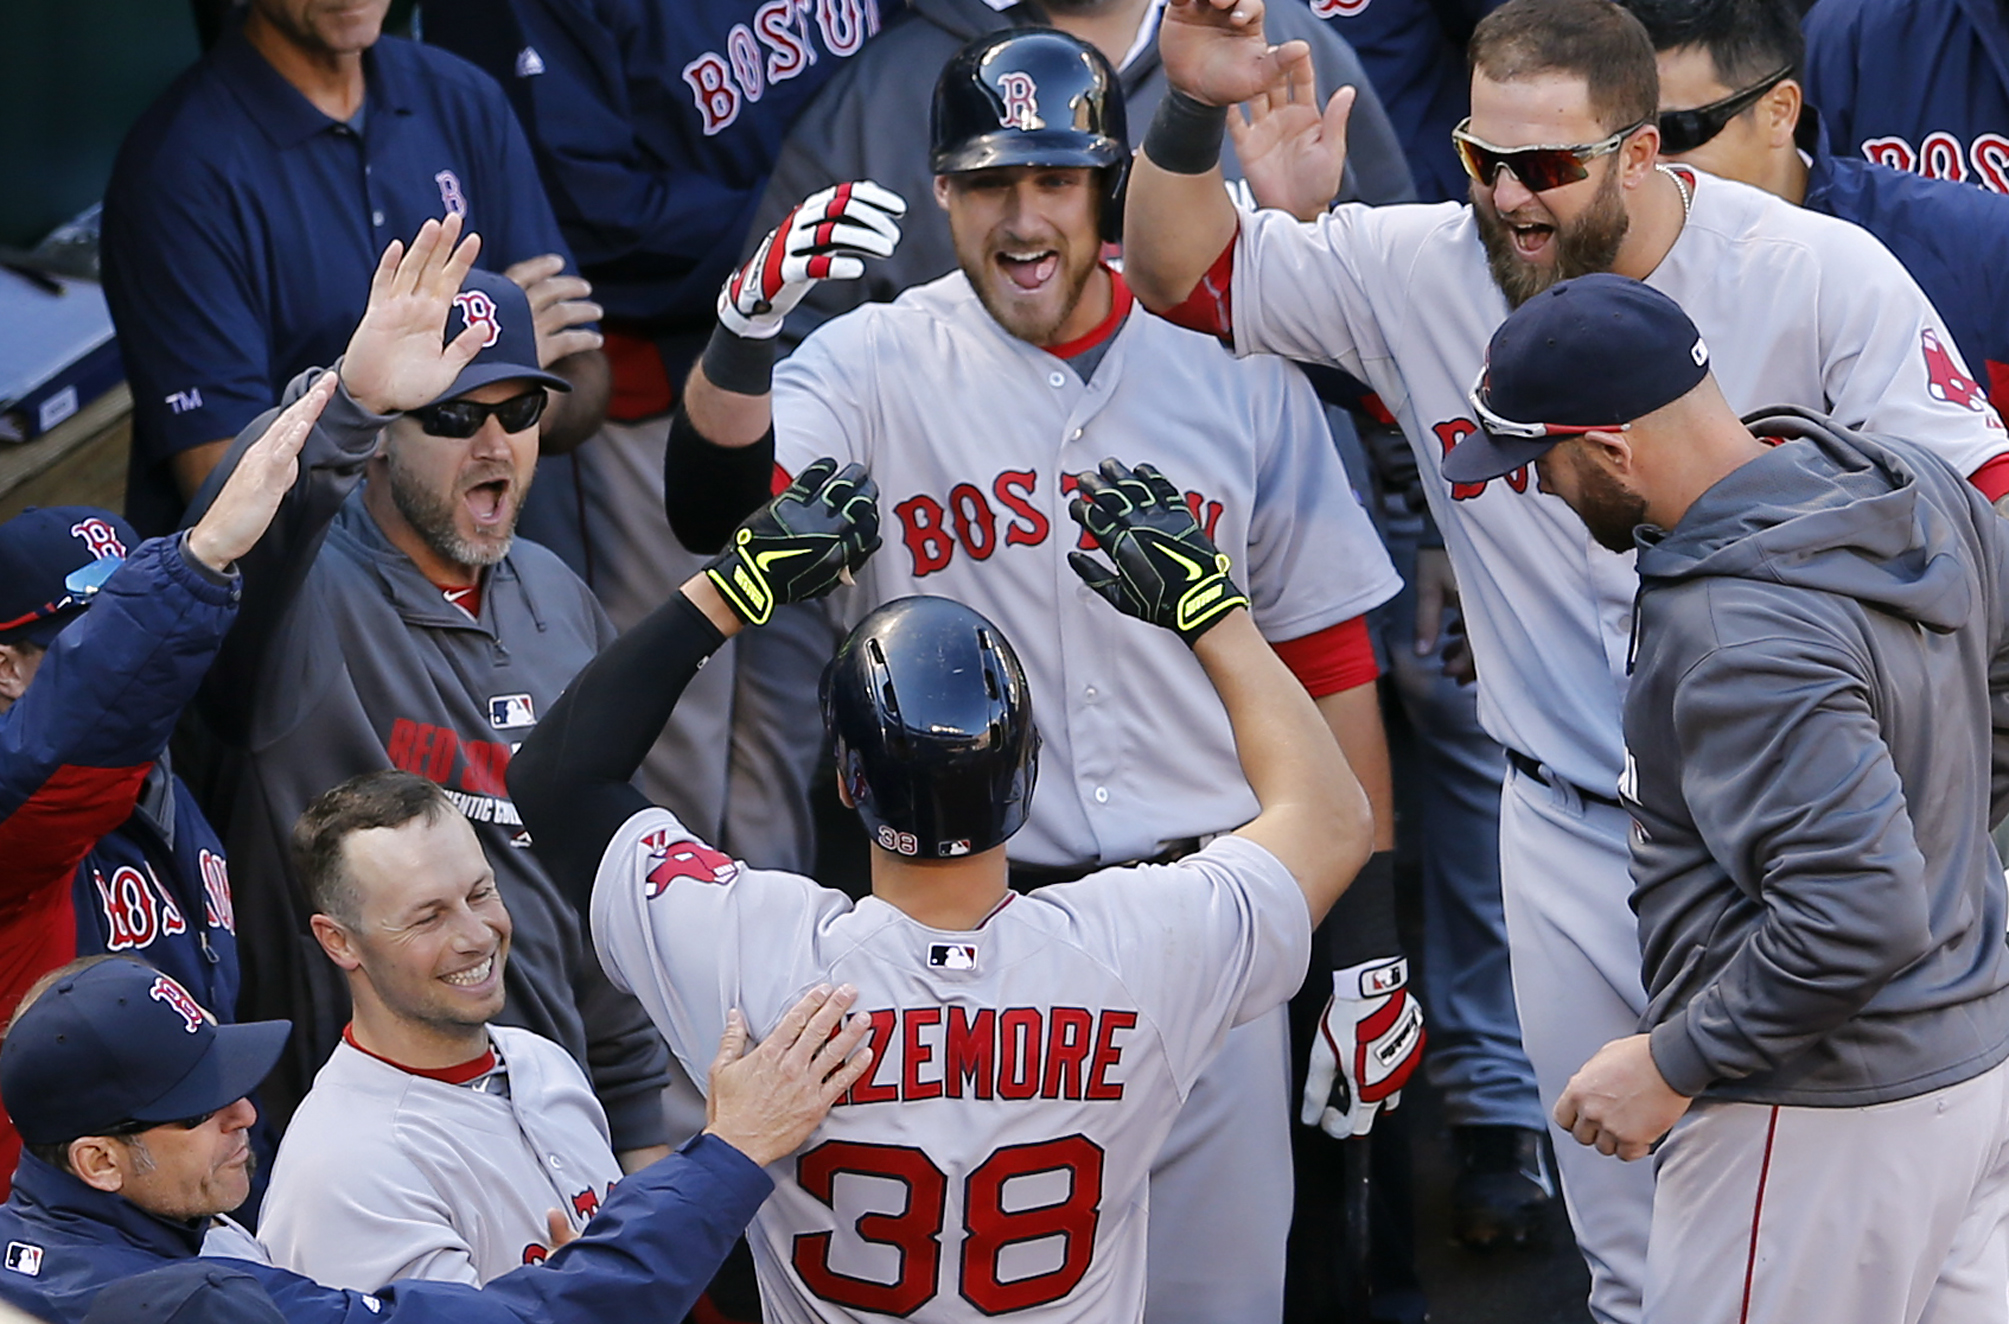 Grady Sizemore homers for Red Sox in first game since 2011